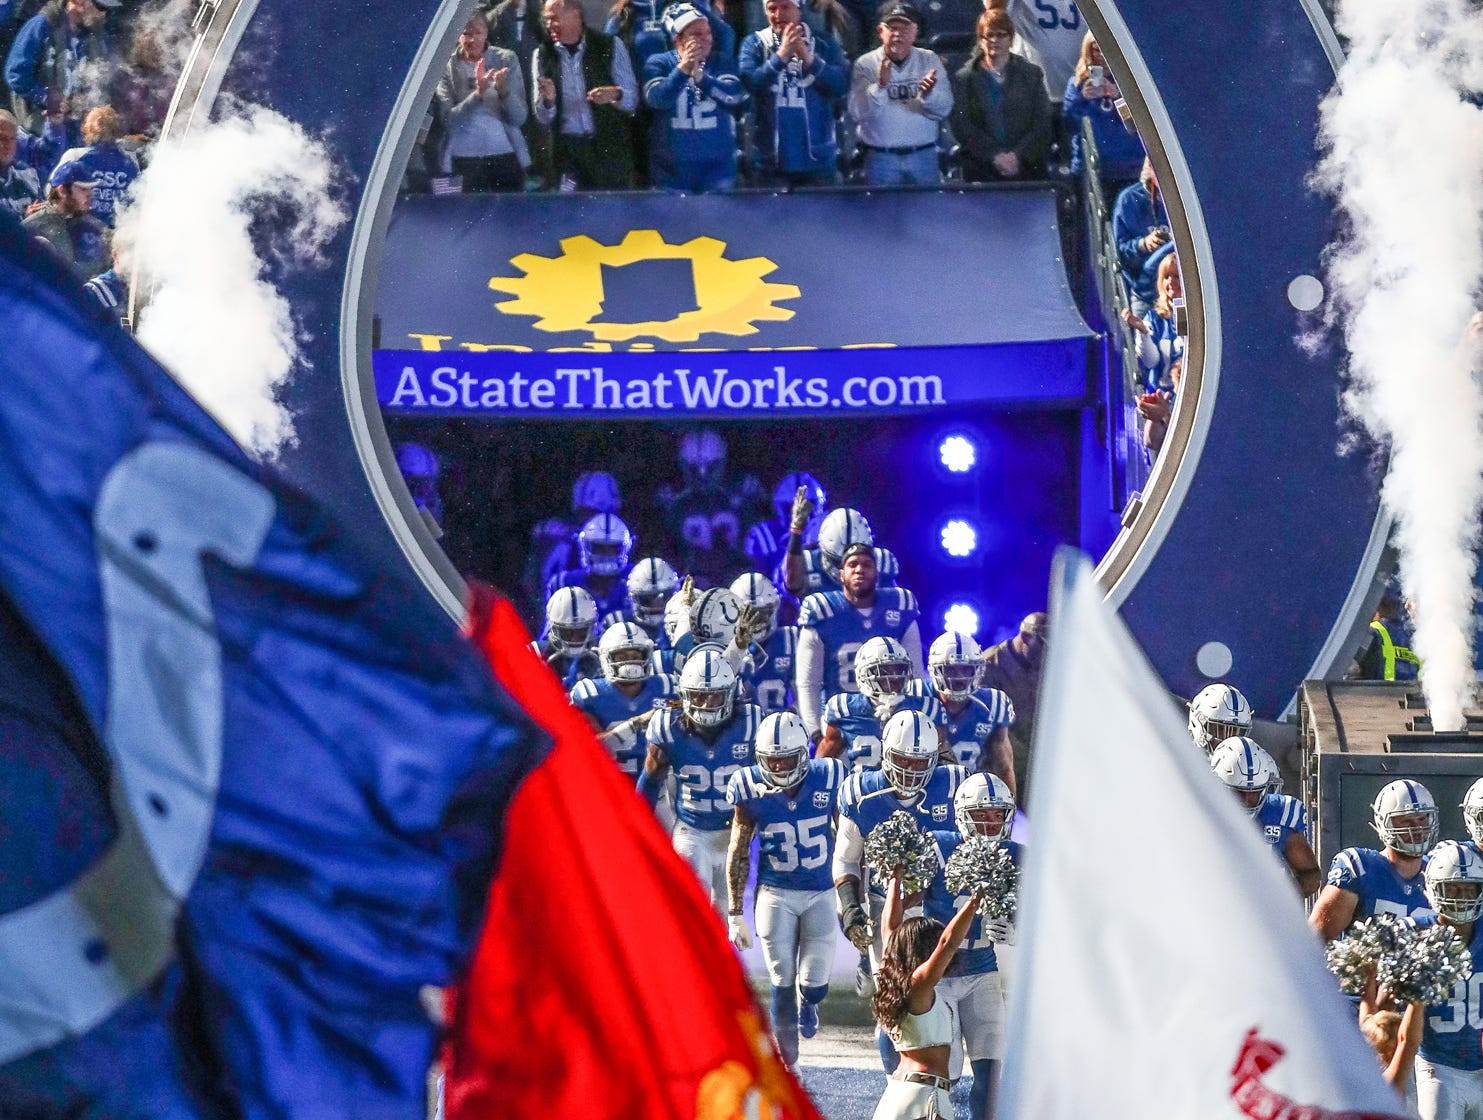 The Indianapolis Colts make their way onto the field to play the Jacksonville Jaguars at Lucas Oil Stadium on Sunday, Nov. 11, 2018.